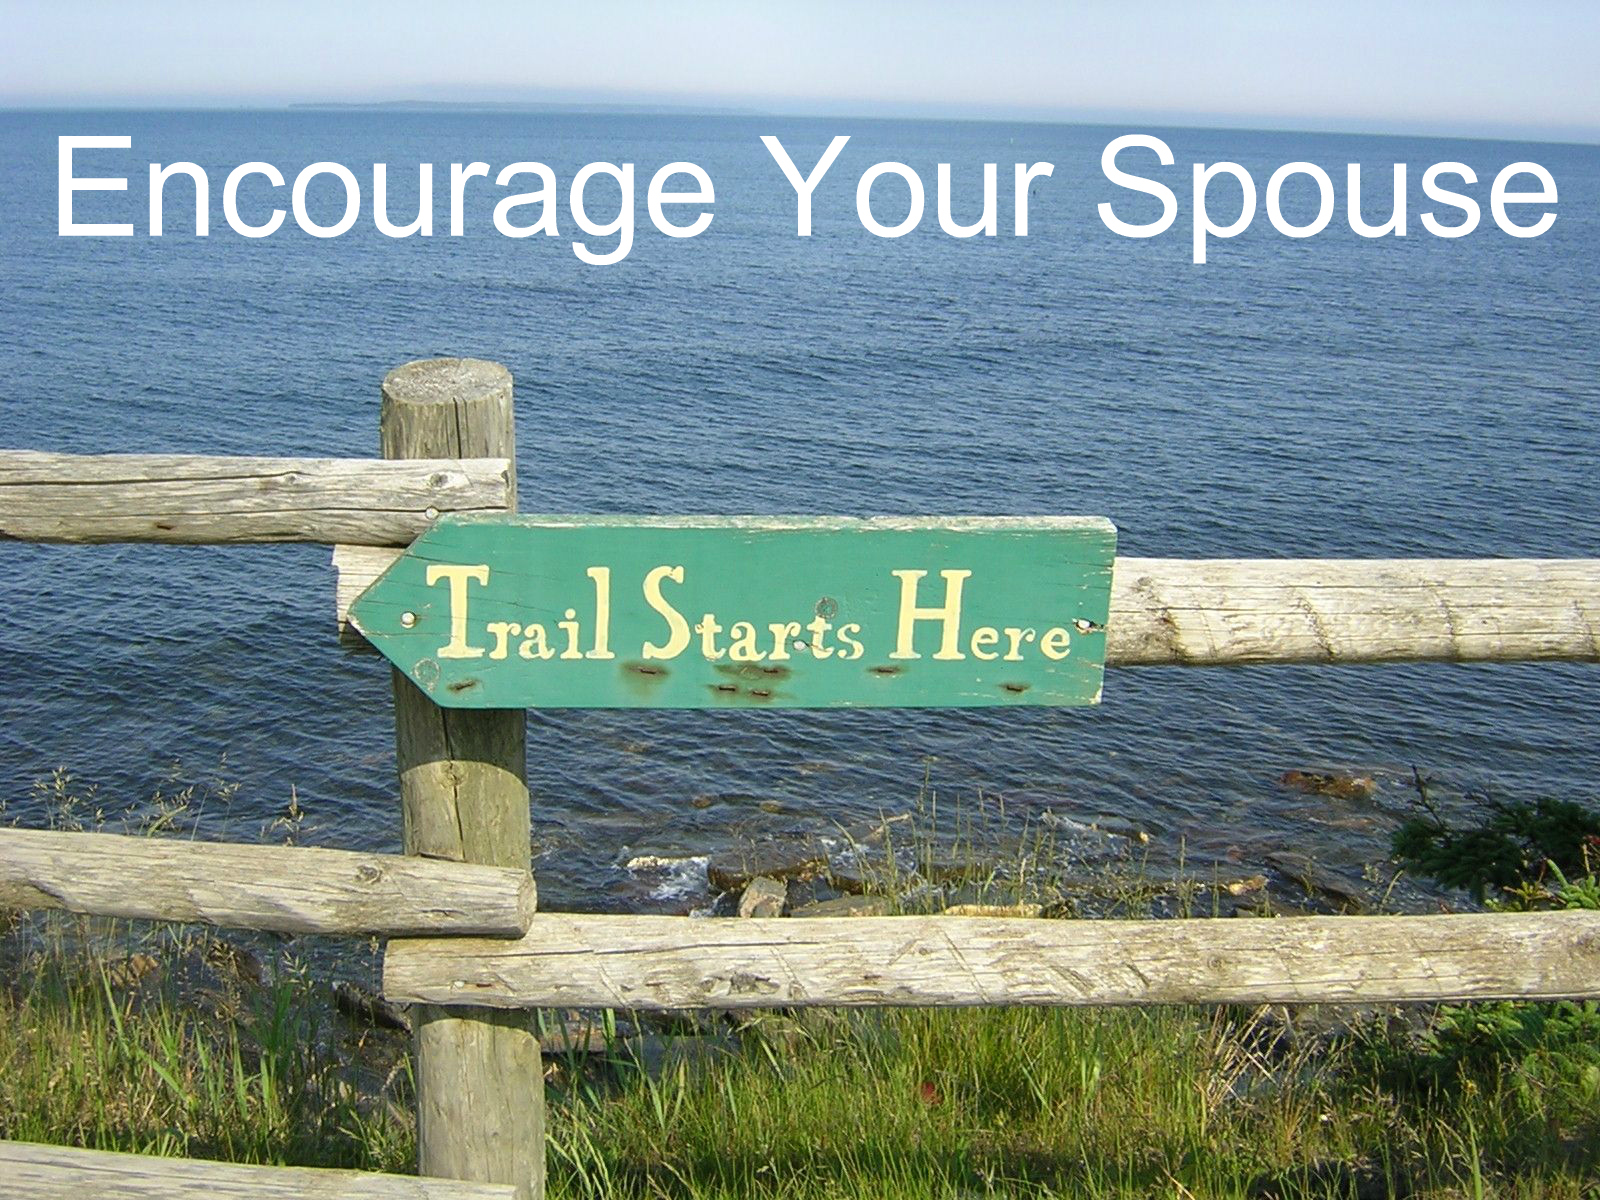 The 5 Steps to Encourage